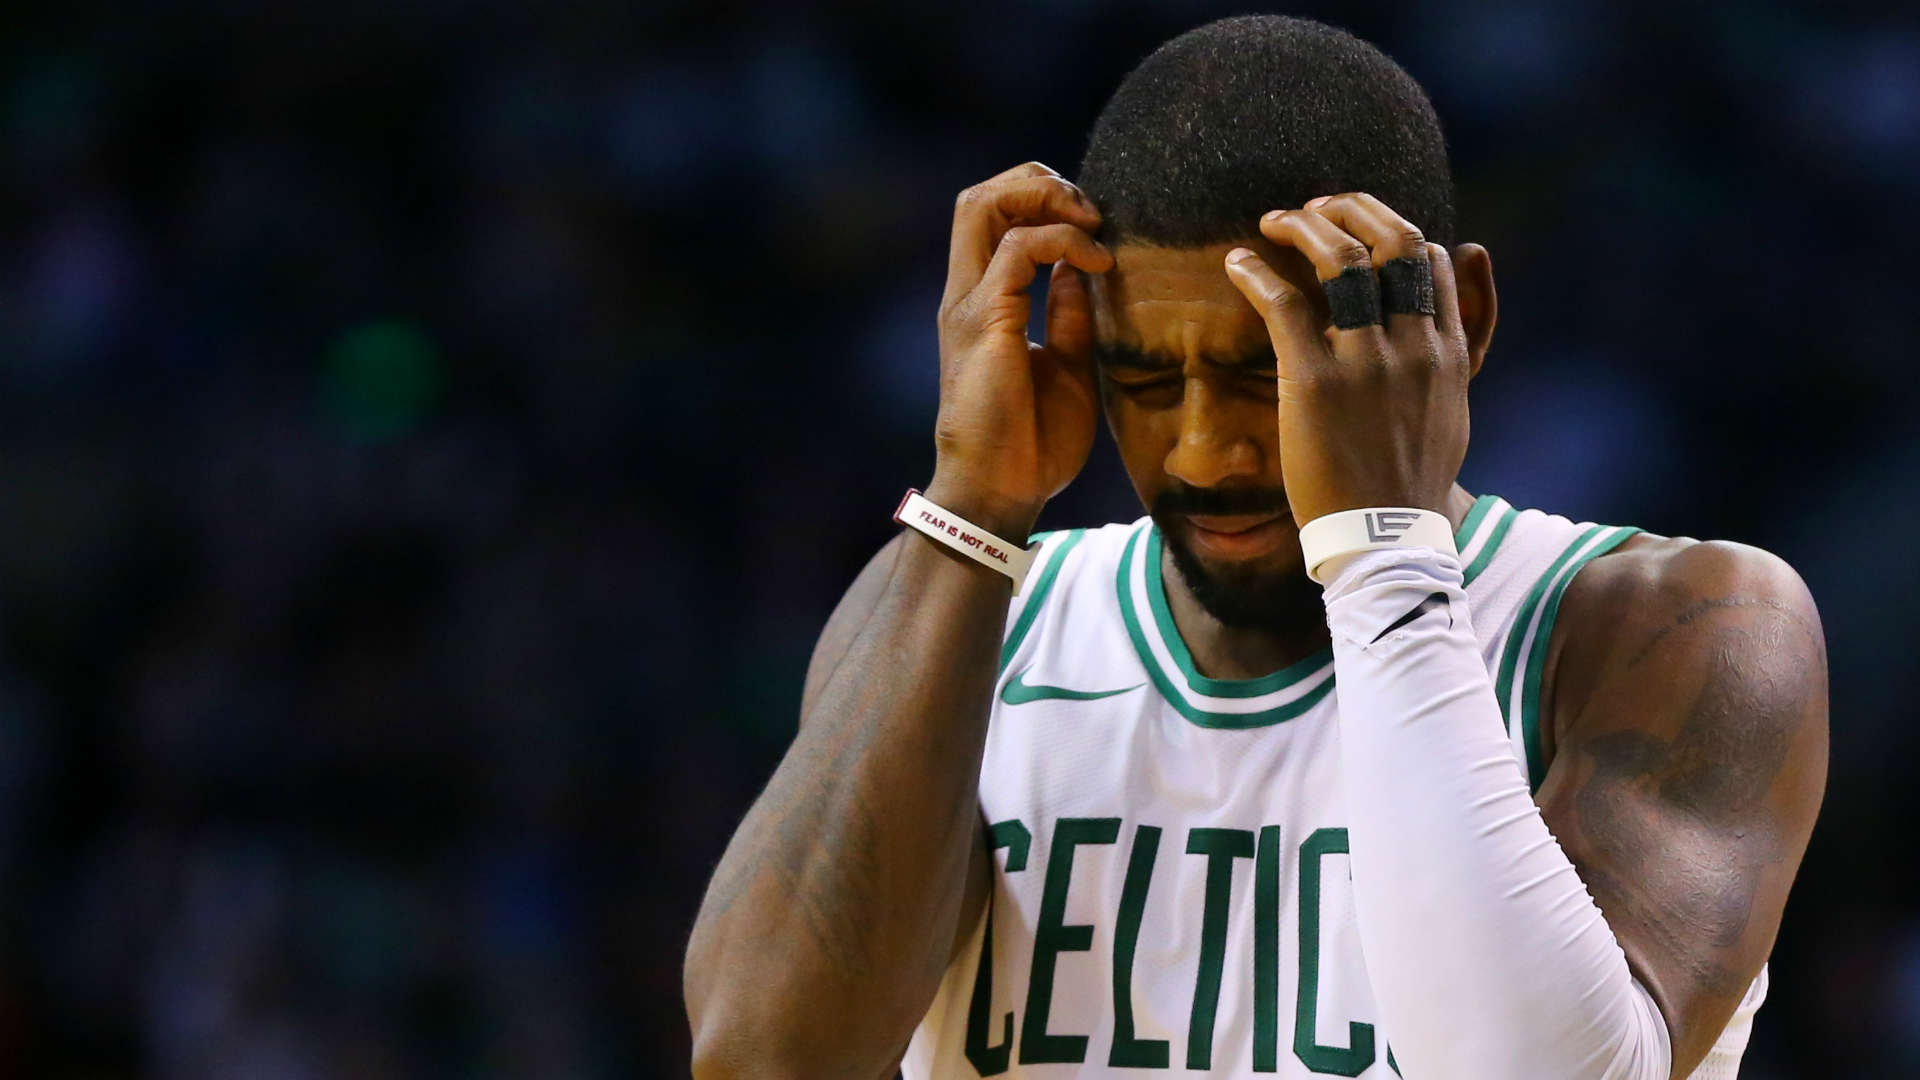 Kyrie Irving leaves Friday's game with possible concussion